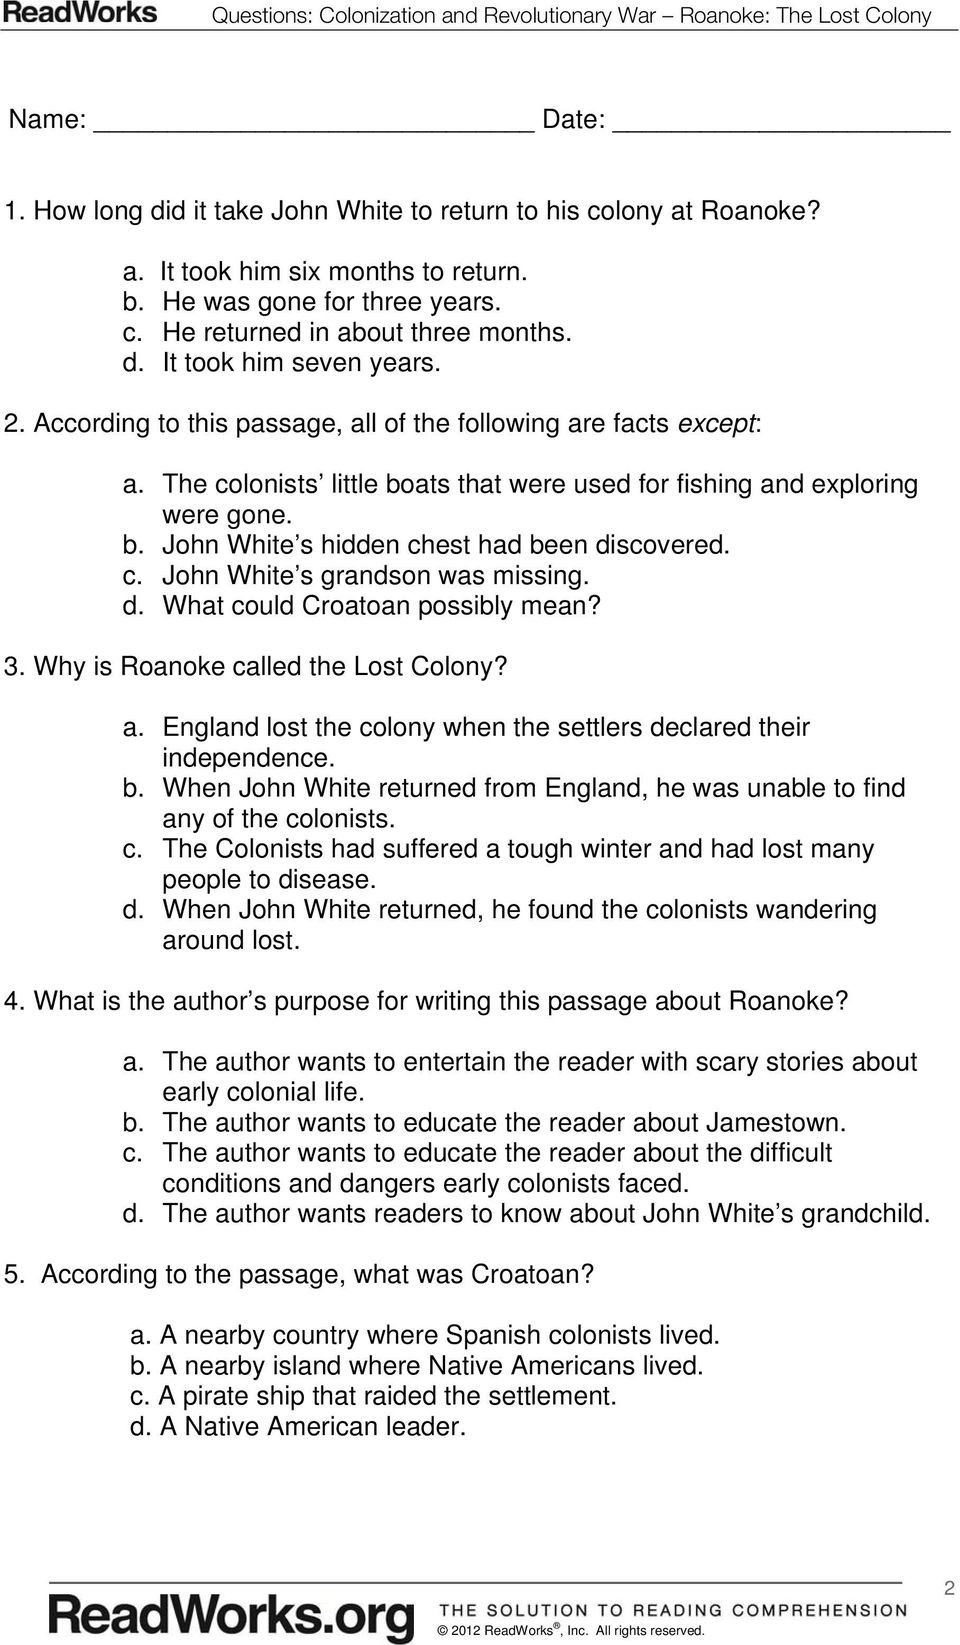 hight resolution of Jamestown Colony Worksheet 5th Grade in 2020   5th grade worksheets